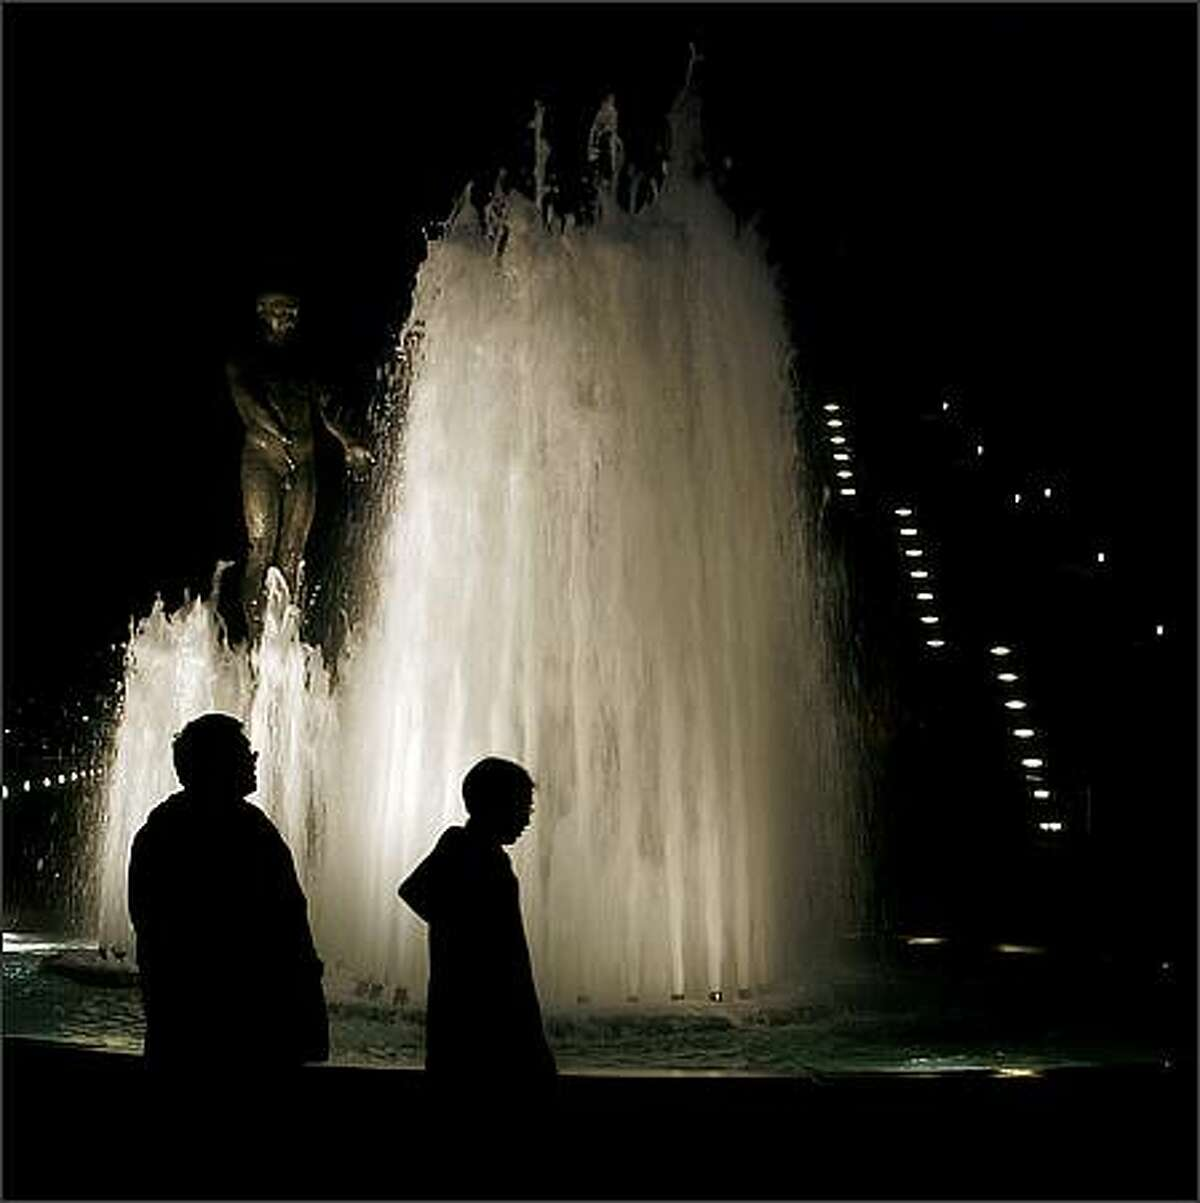 Father and Son fountain, created by artist Louise Bourgeois, at the SAM Olympic Sculpture Park in Seattle. Jan. 13, 2009.